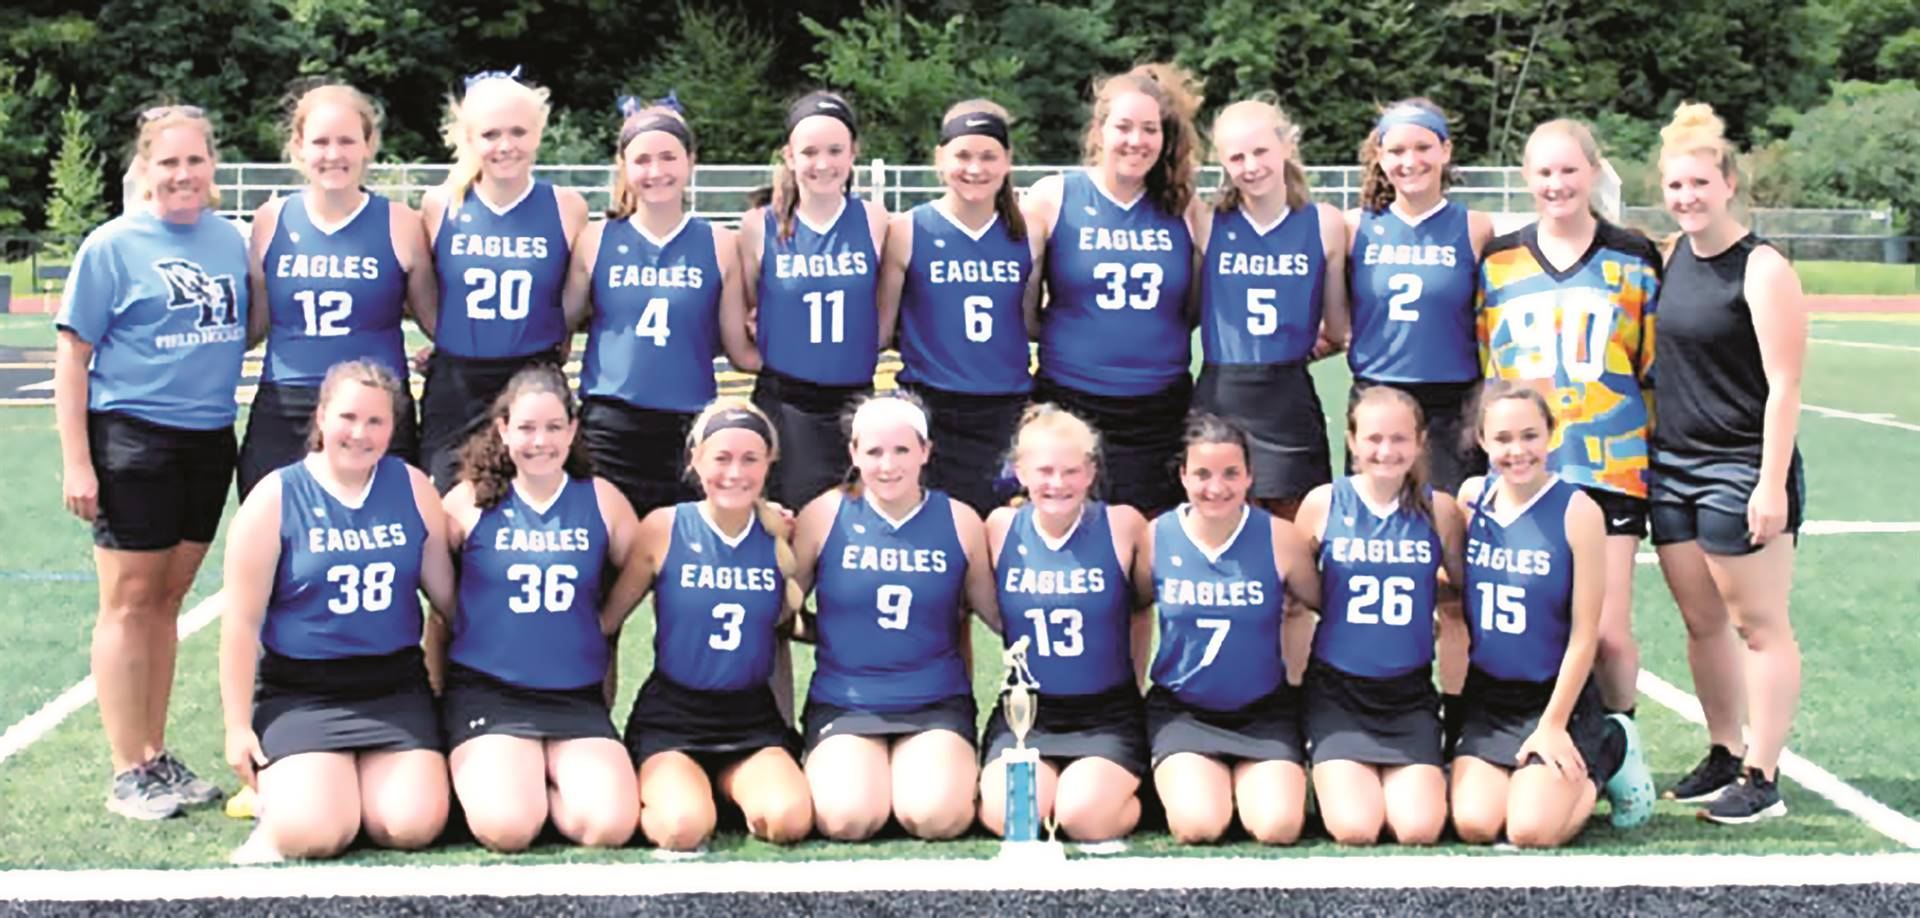 Deposit/Hancock field hockey team 2019